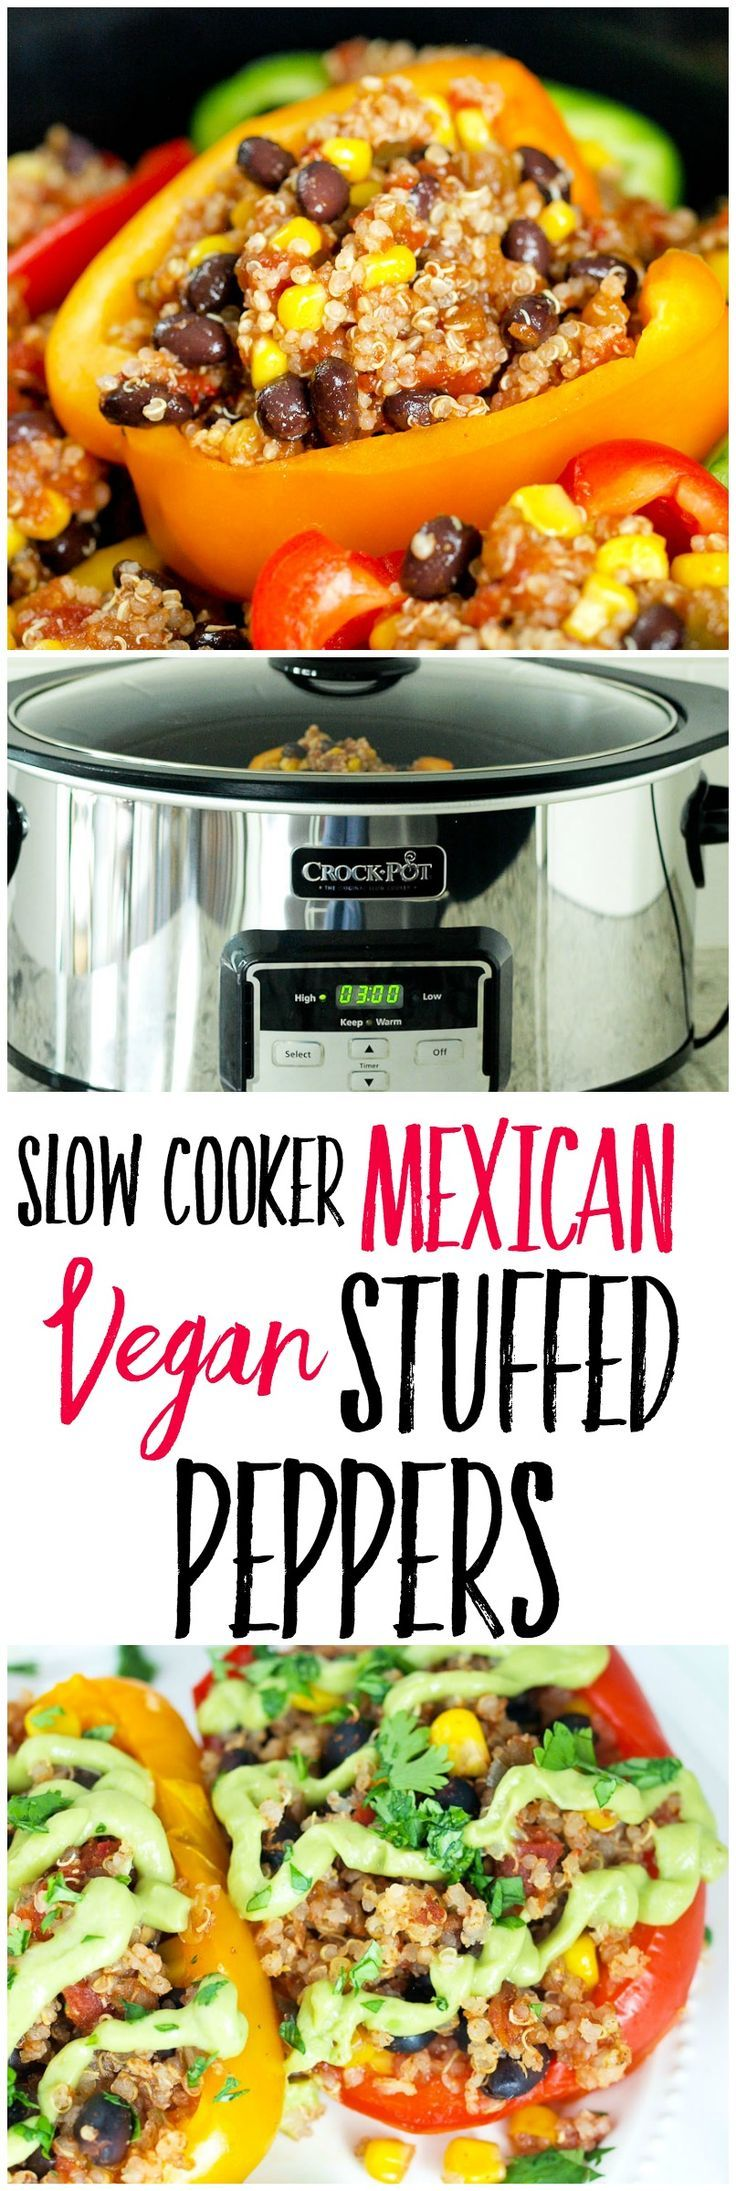 Mexican Vegan Stuffed Peppers Slow Cooker